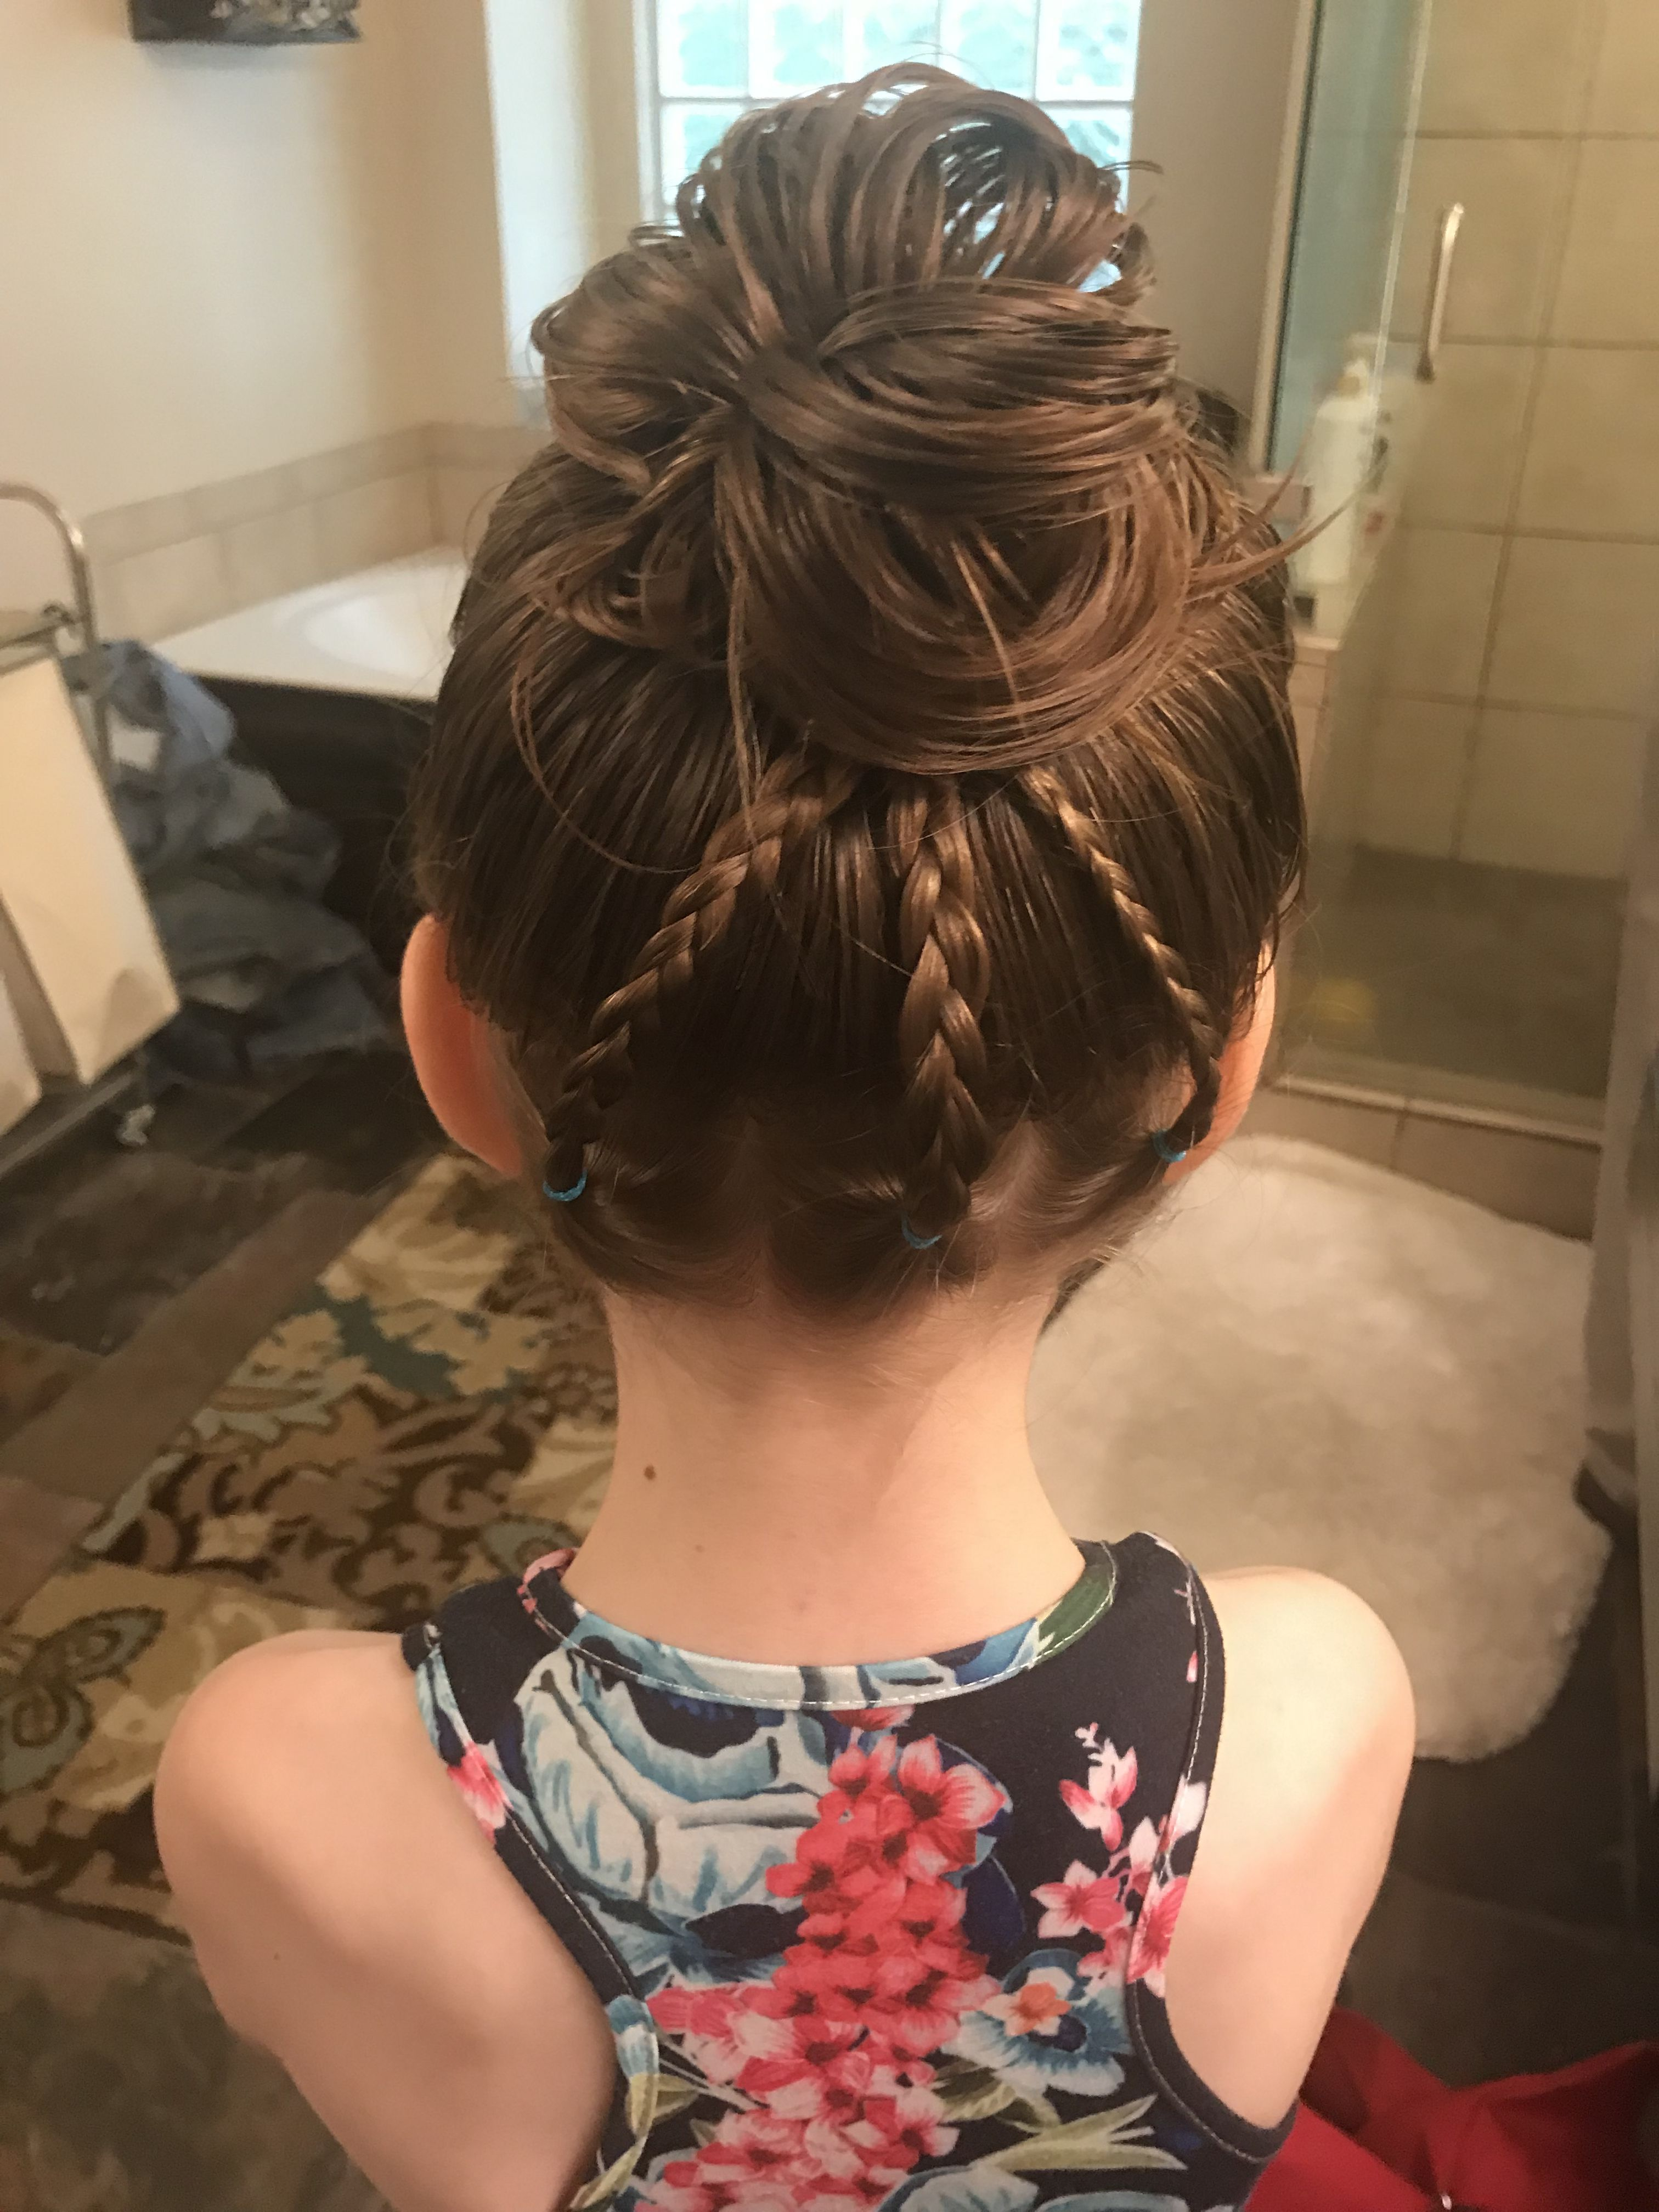 Easy Little Girl Hairstyle Bun With Braids Kids Hairstyles Girls Hairstyles Easy Little Girl Hairstyles